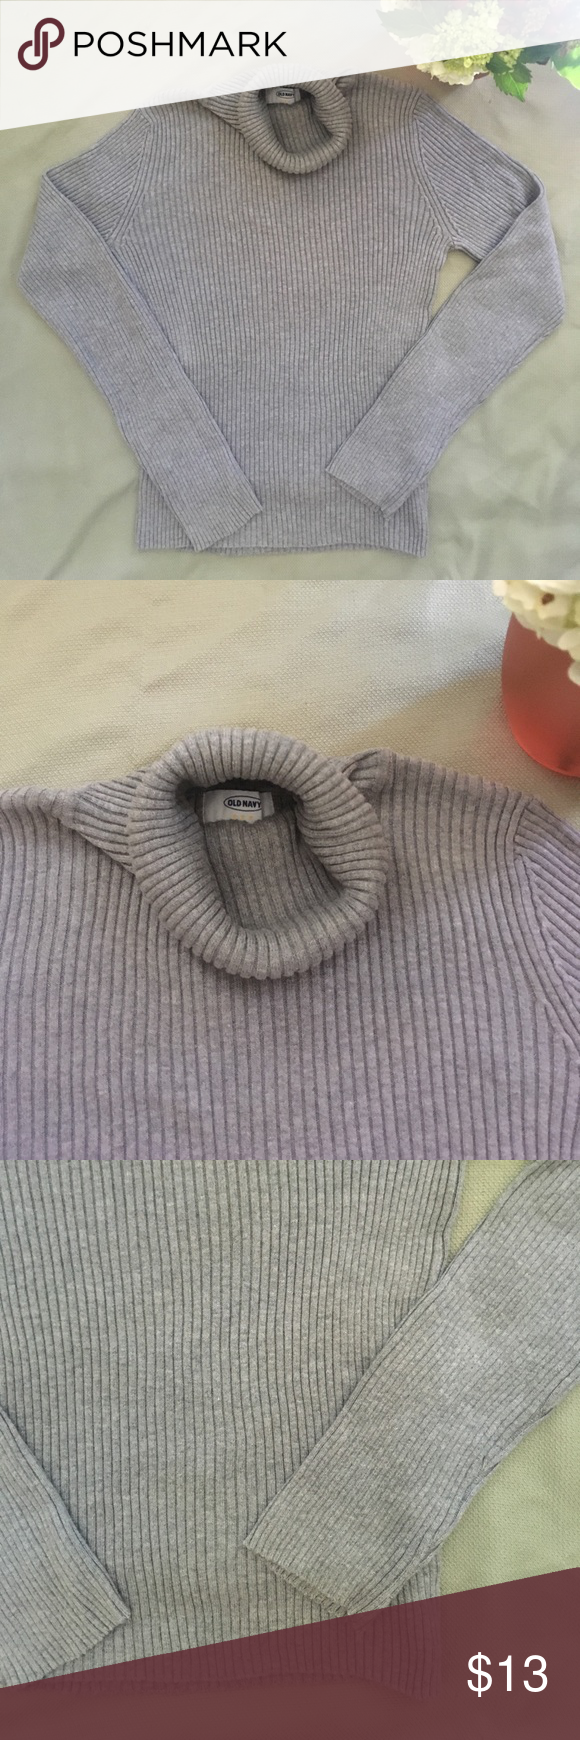 Gray cotton turtleneck sweater | Cotton and Gray